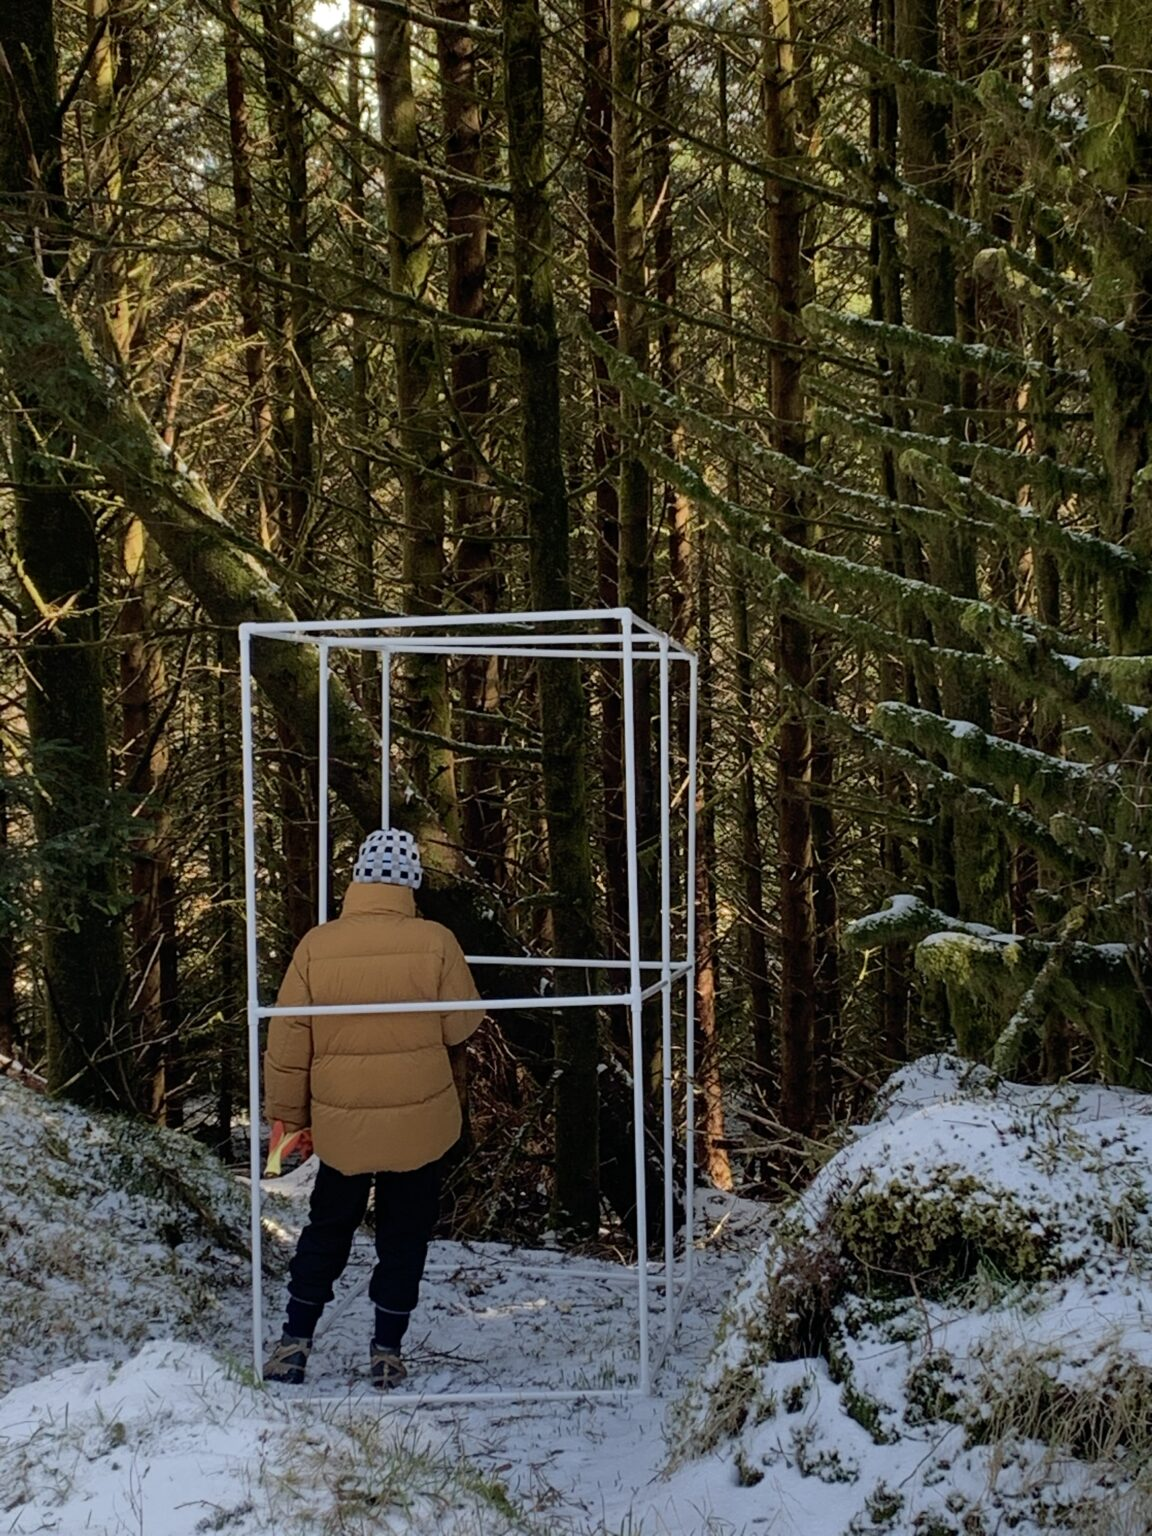 white portable bus stop on snowy ground with dark large forest behind with person inside in a yellow coat